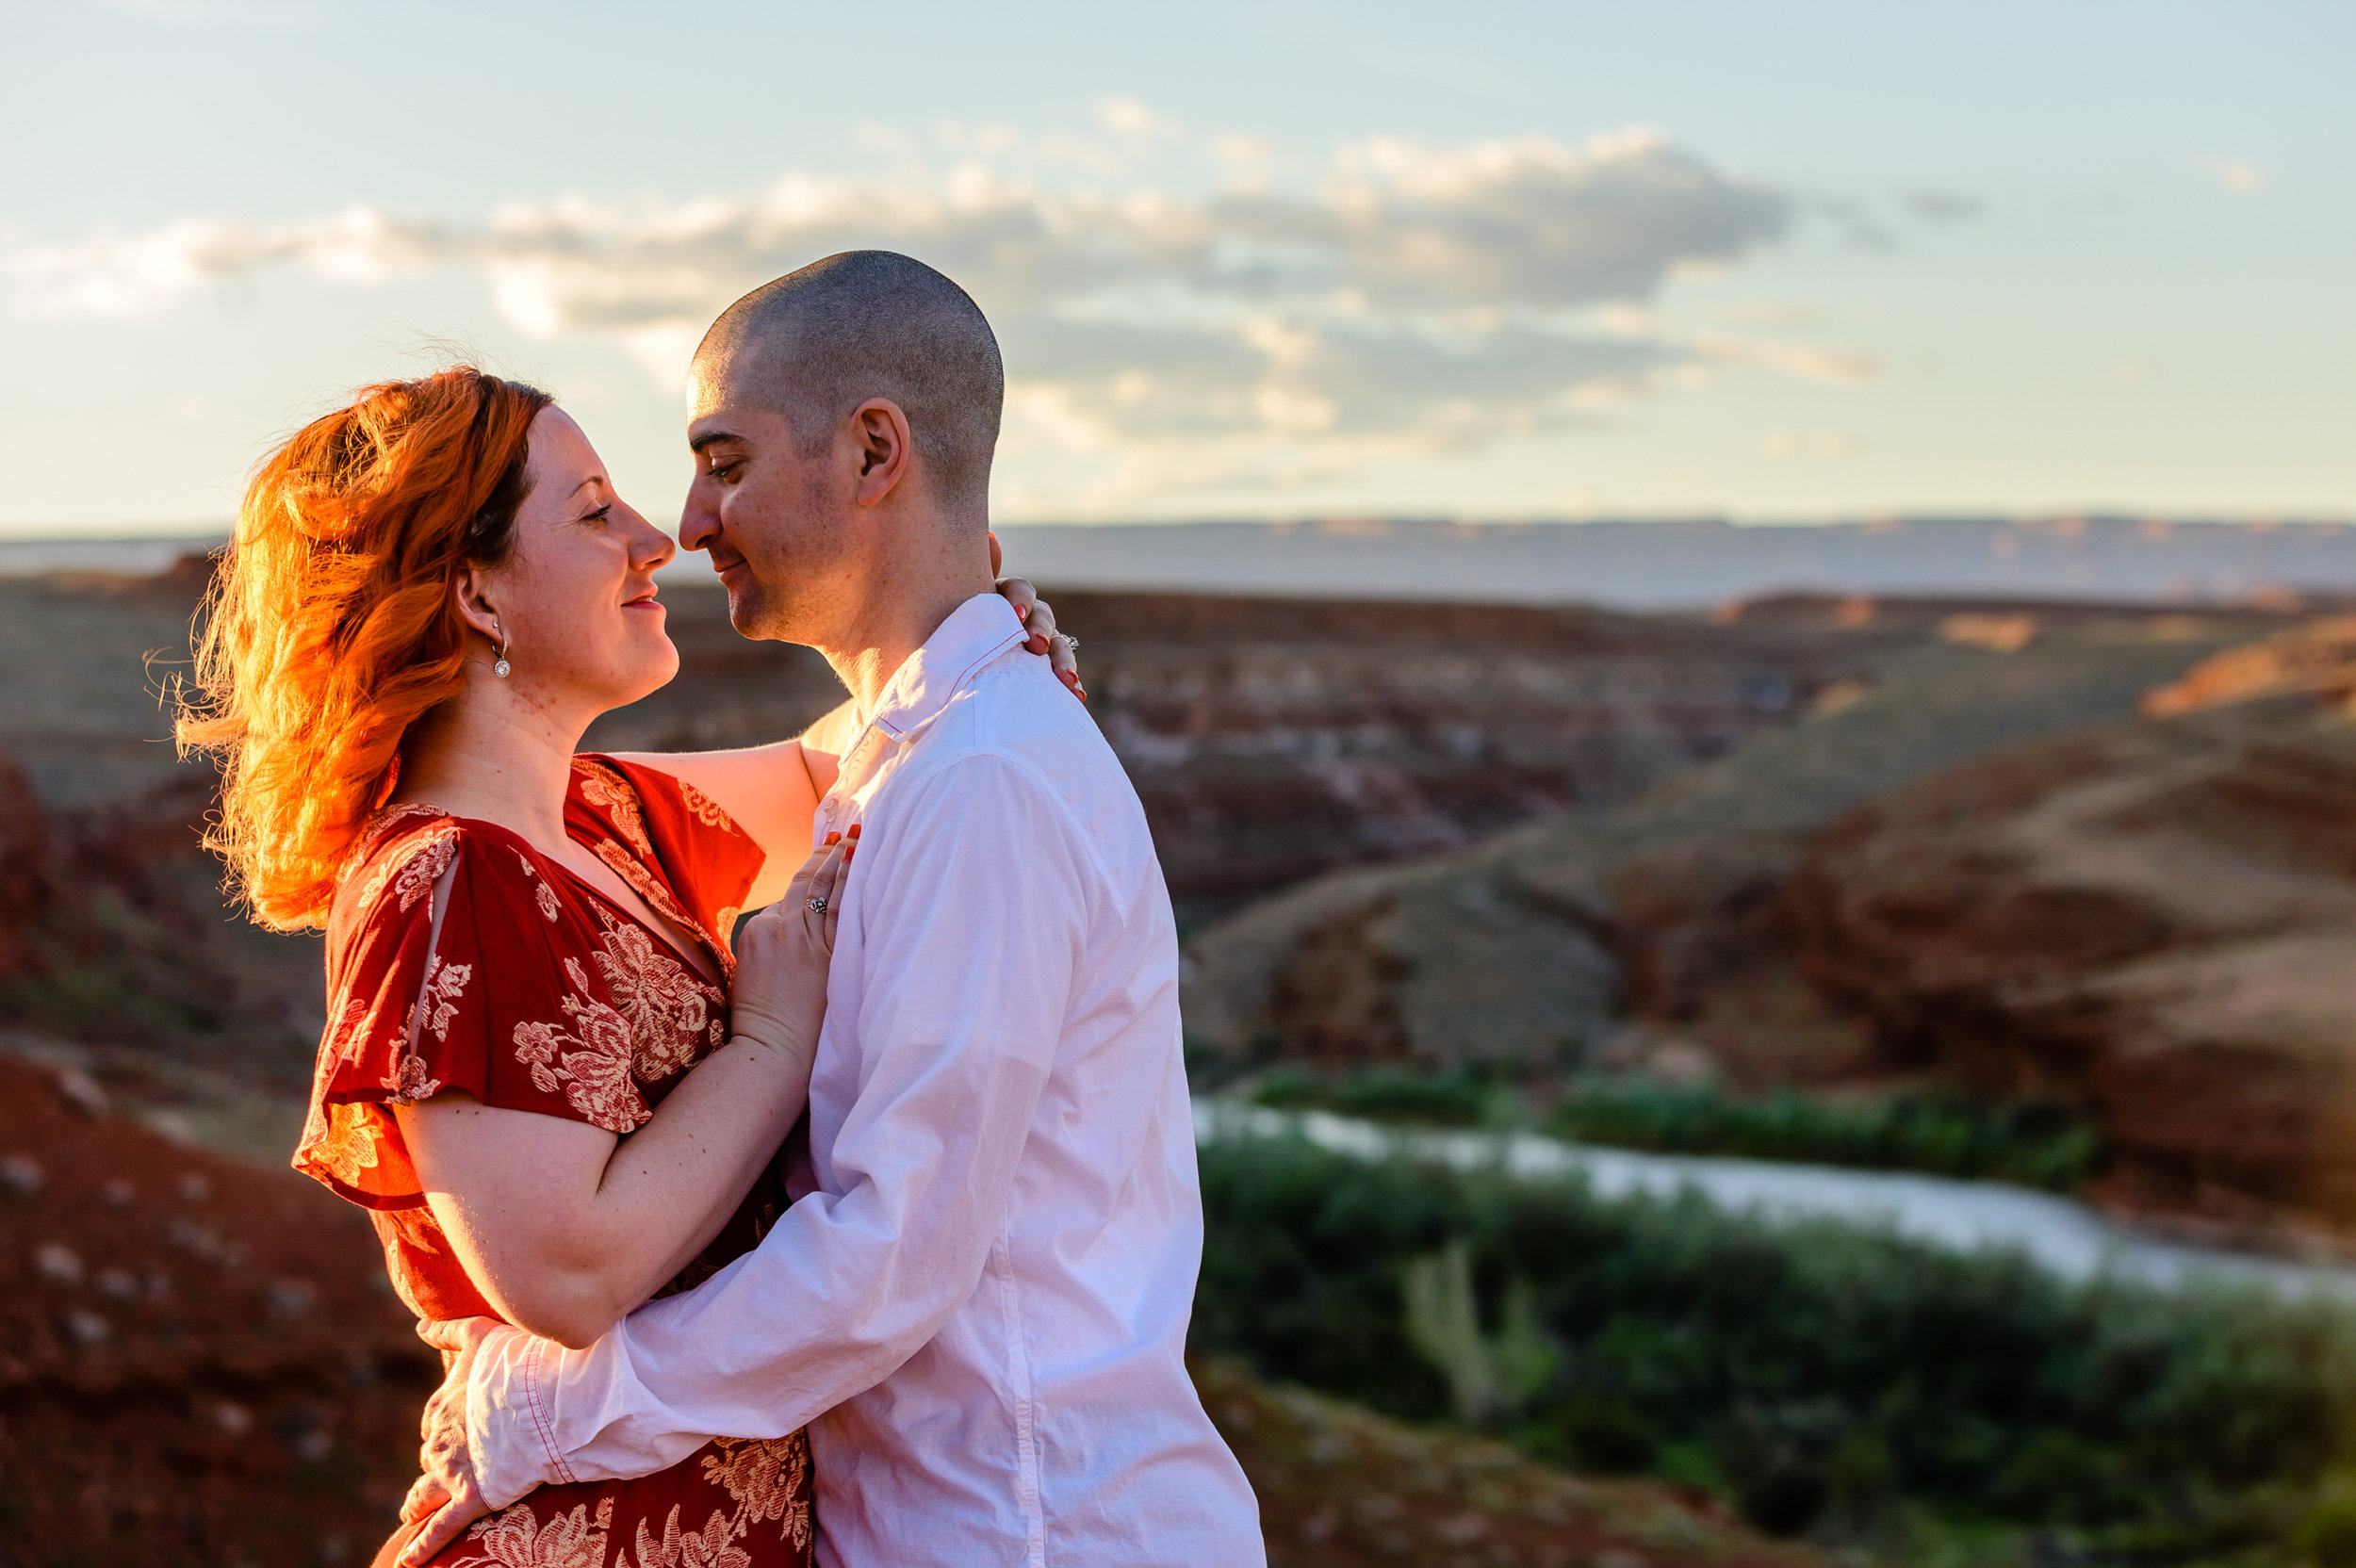 MonumentValleyEngagement-Alicia&Rob-9721.jpg